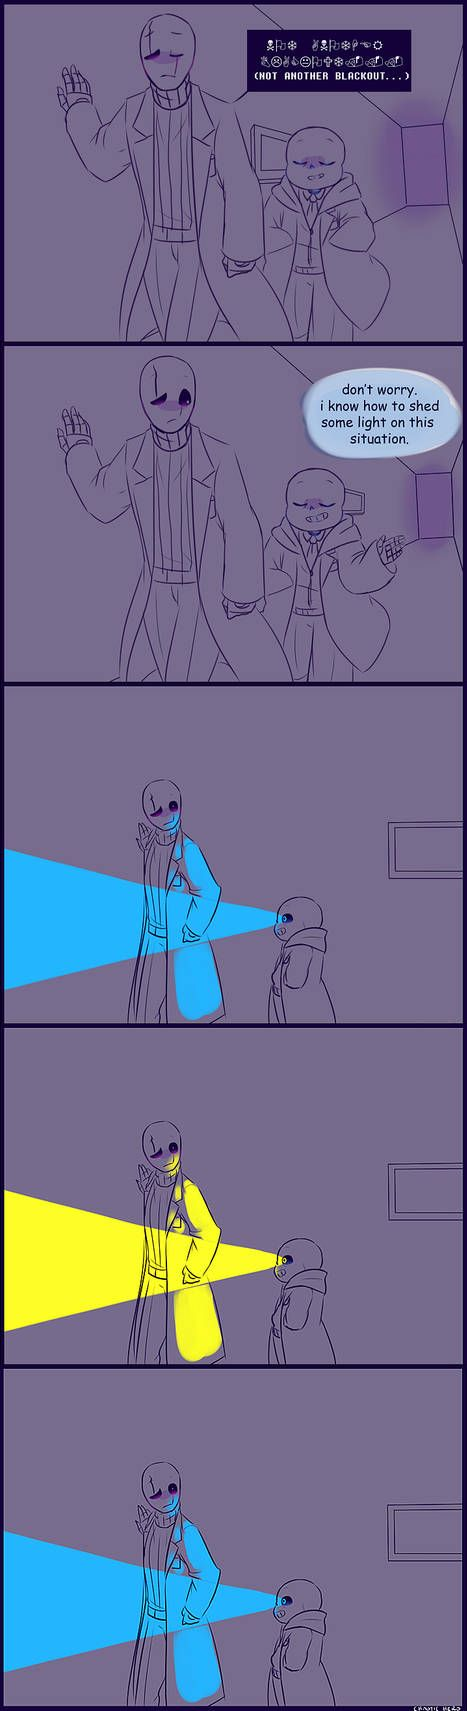 Sans and Gaster Undertale Flashlight by chaoticshero on DeviantArt